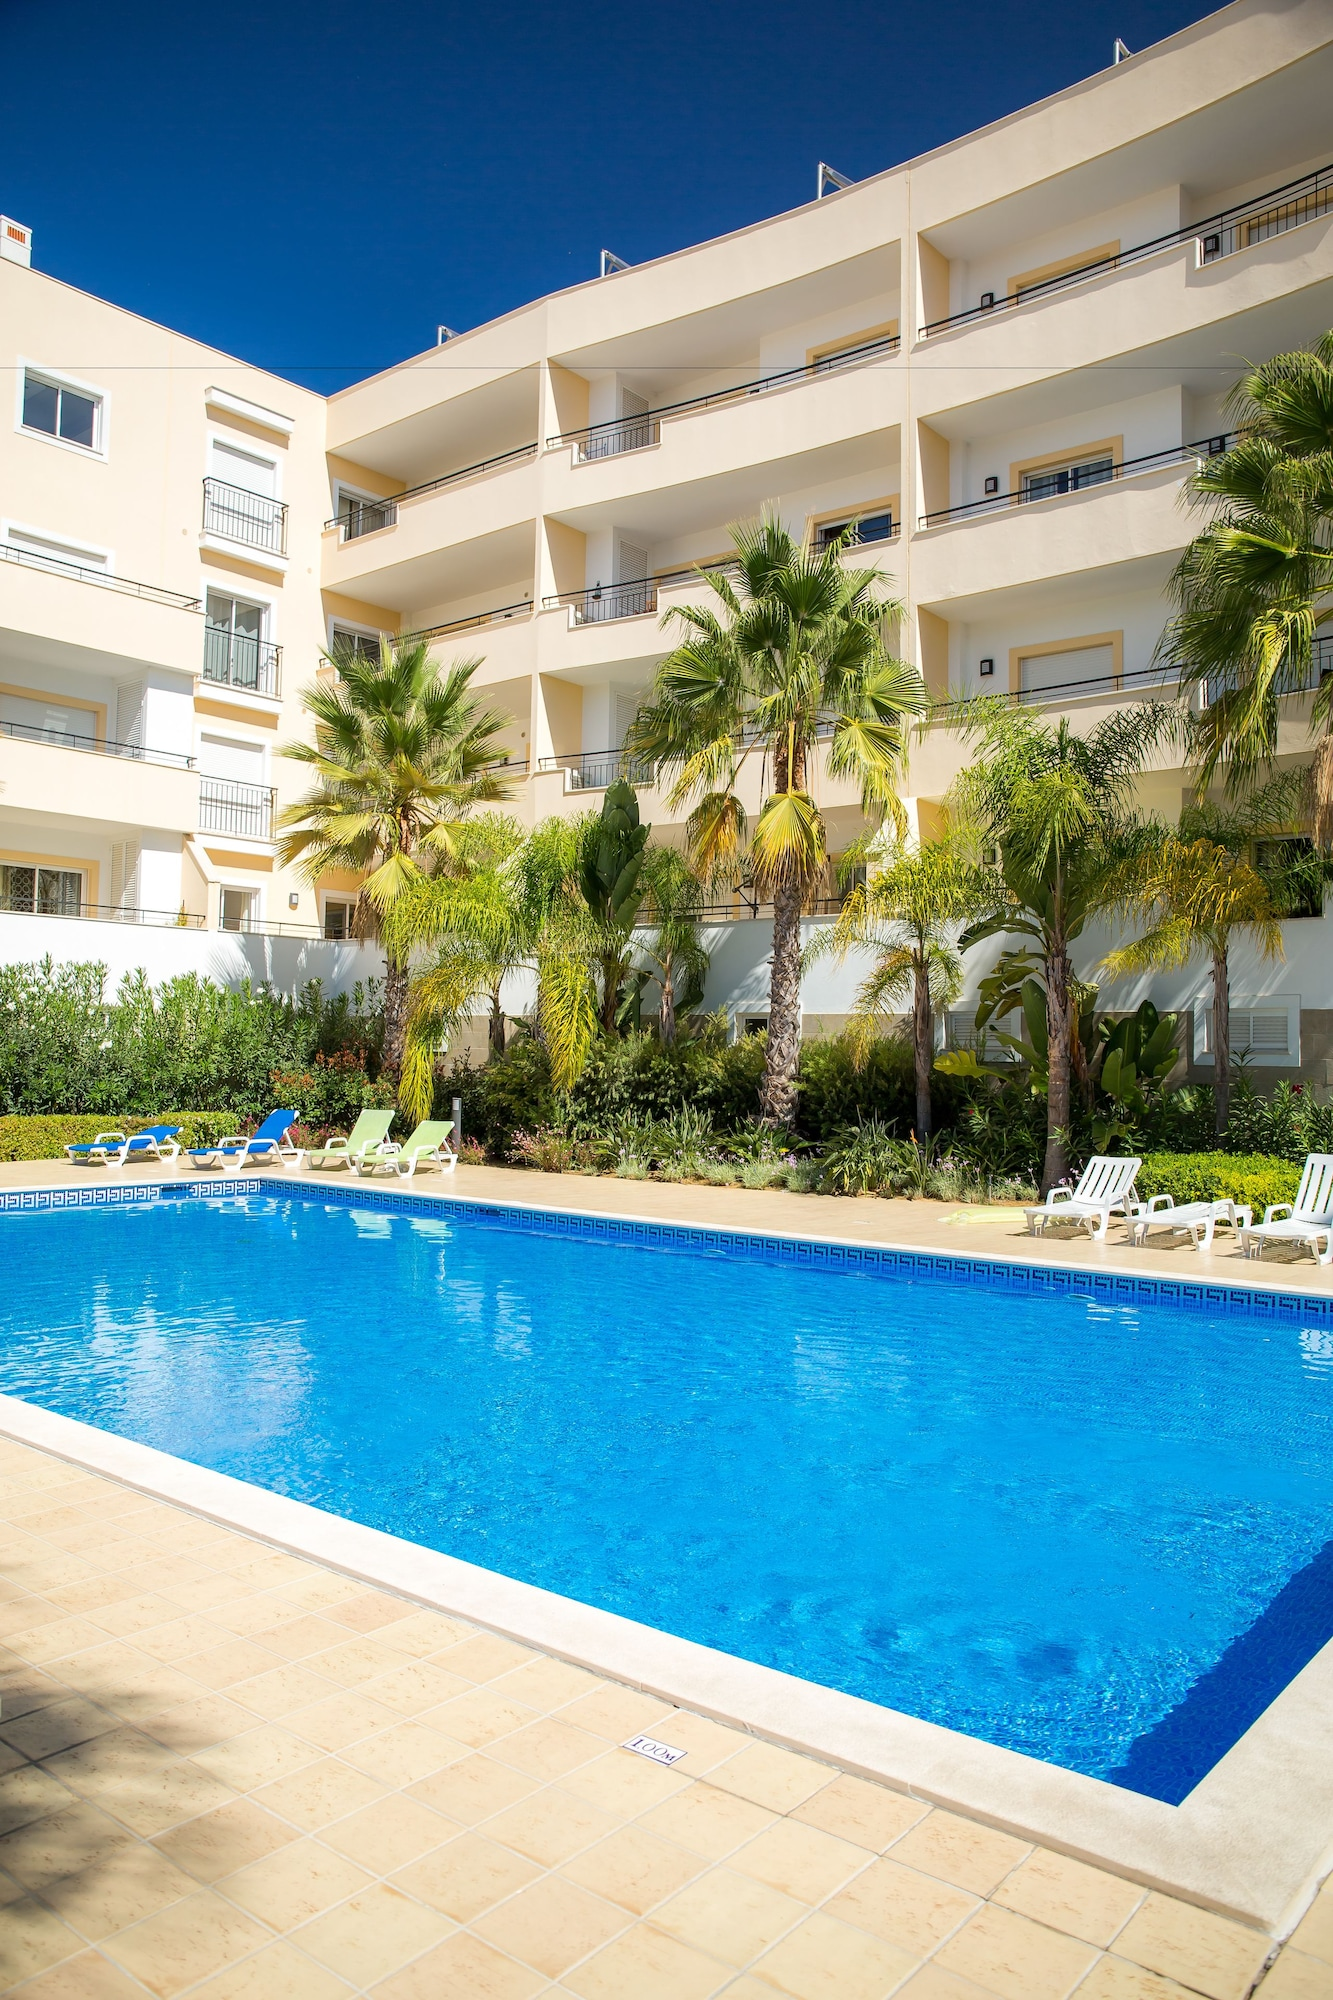 A05 - Luxury 1 Bed Fully Equipped with pool by DreamAlgarve, Lagos